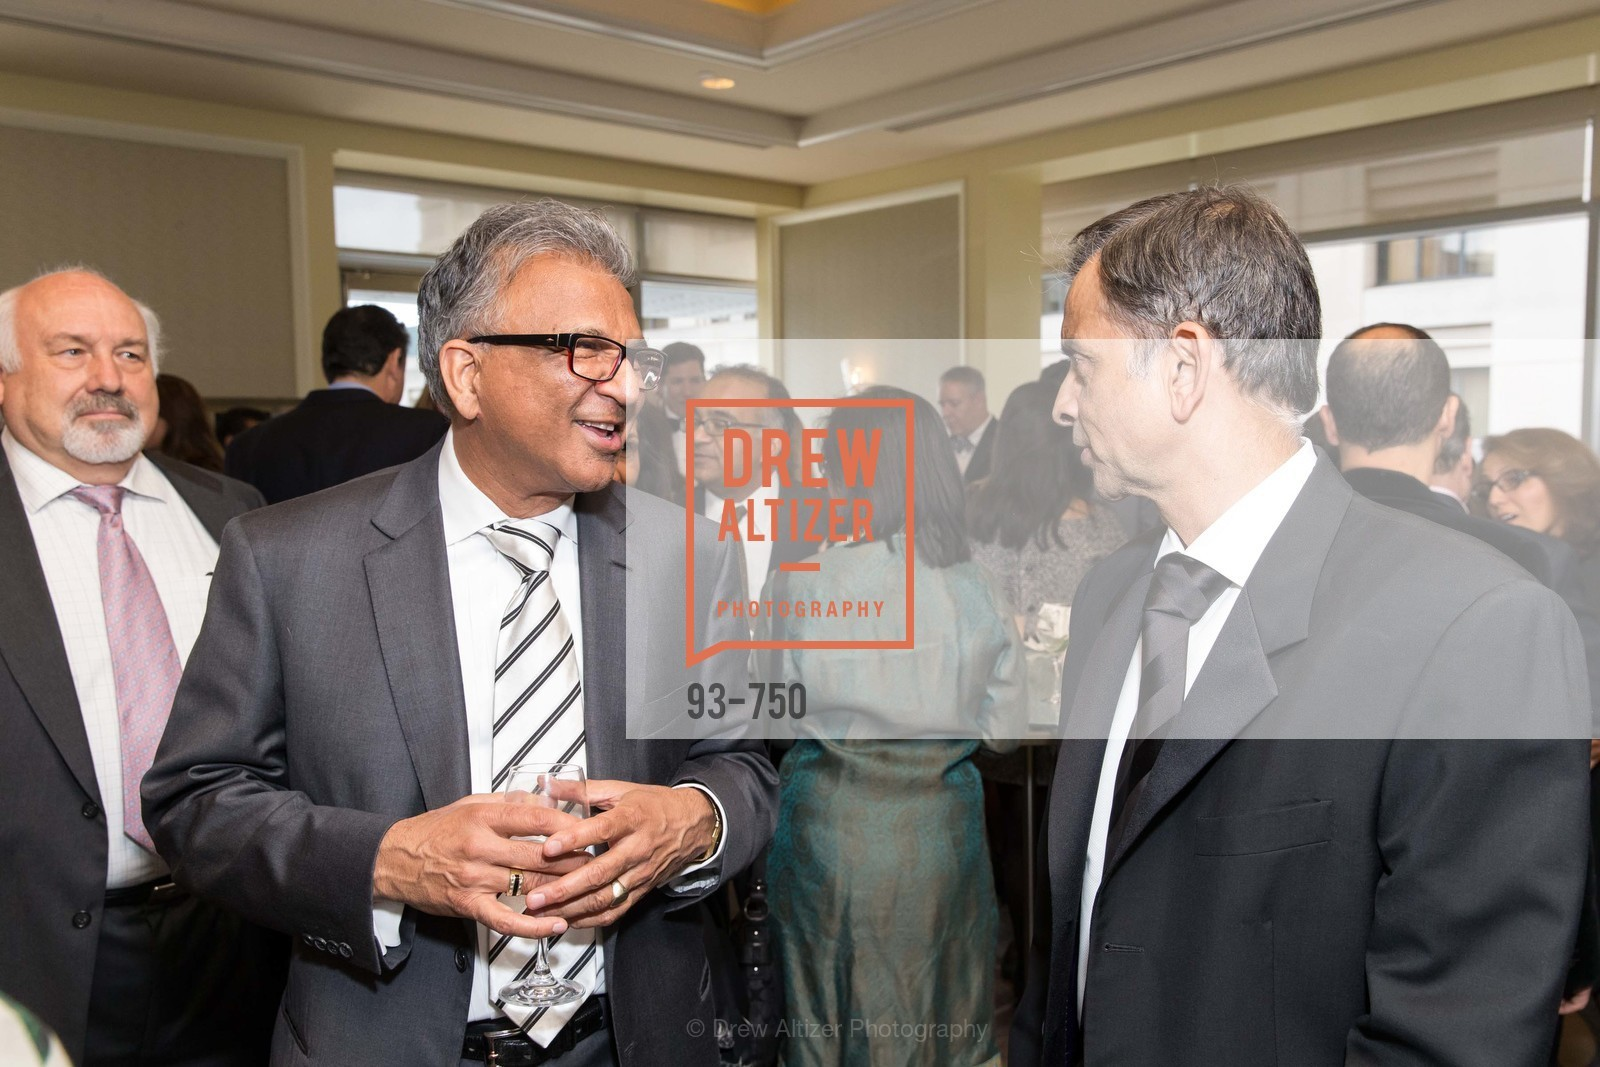 Umnang Gupta, Vivek Ranadive, WORLD AFFAIRS COUNCIL Awards Dinner, US, May 27th, 2015,Drew Altizer, Drew Altizer Photography, full-service agency, private events, San Francisco photographer, photographer california